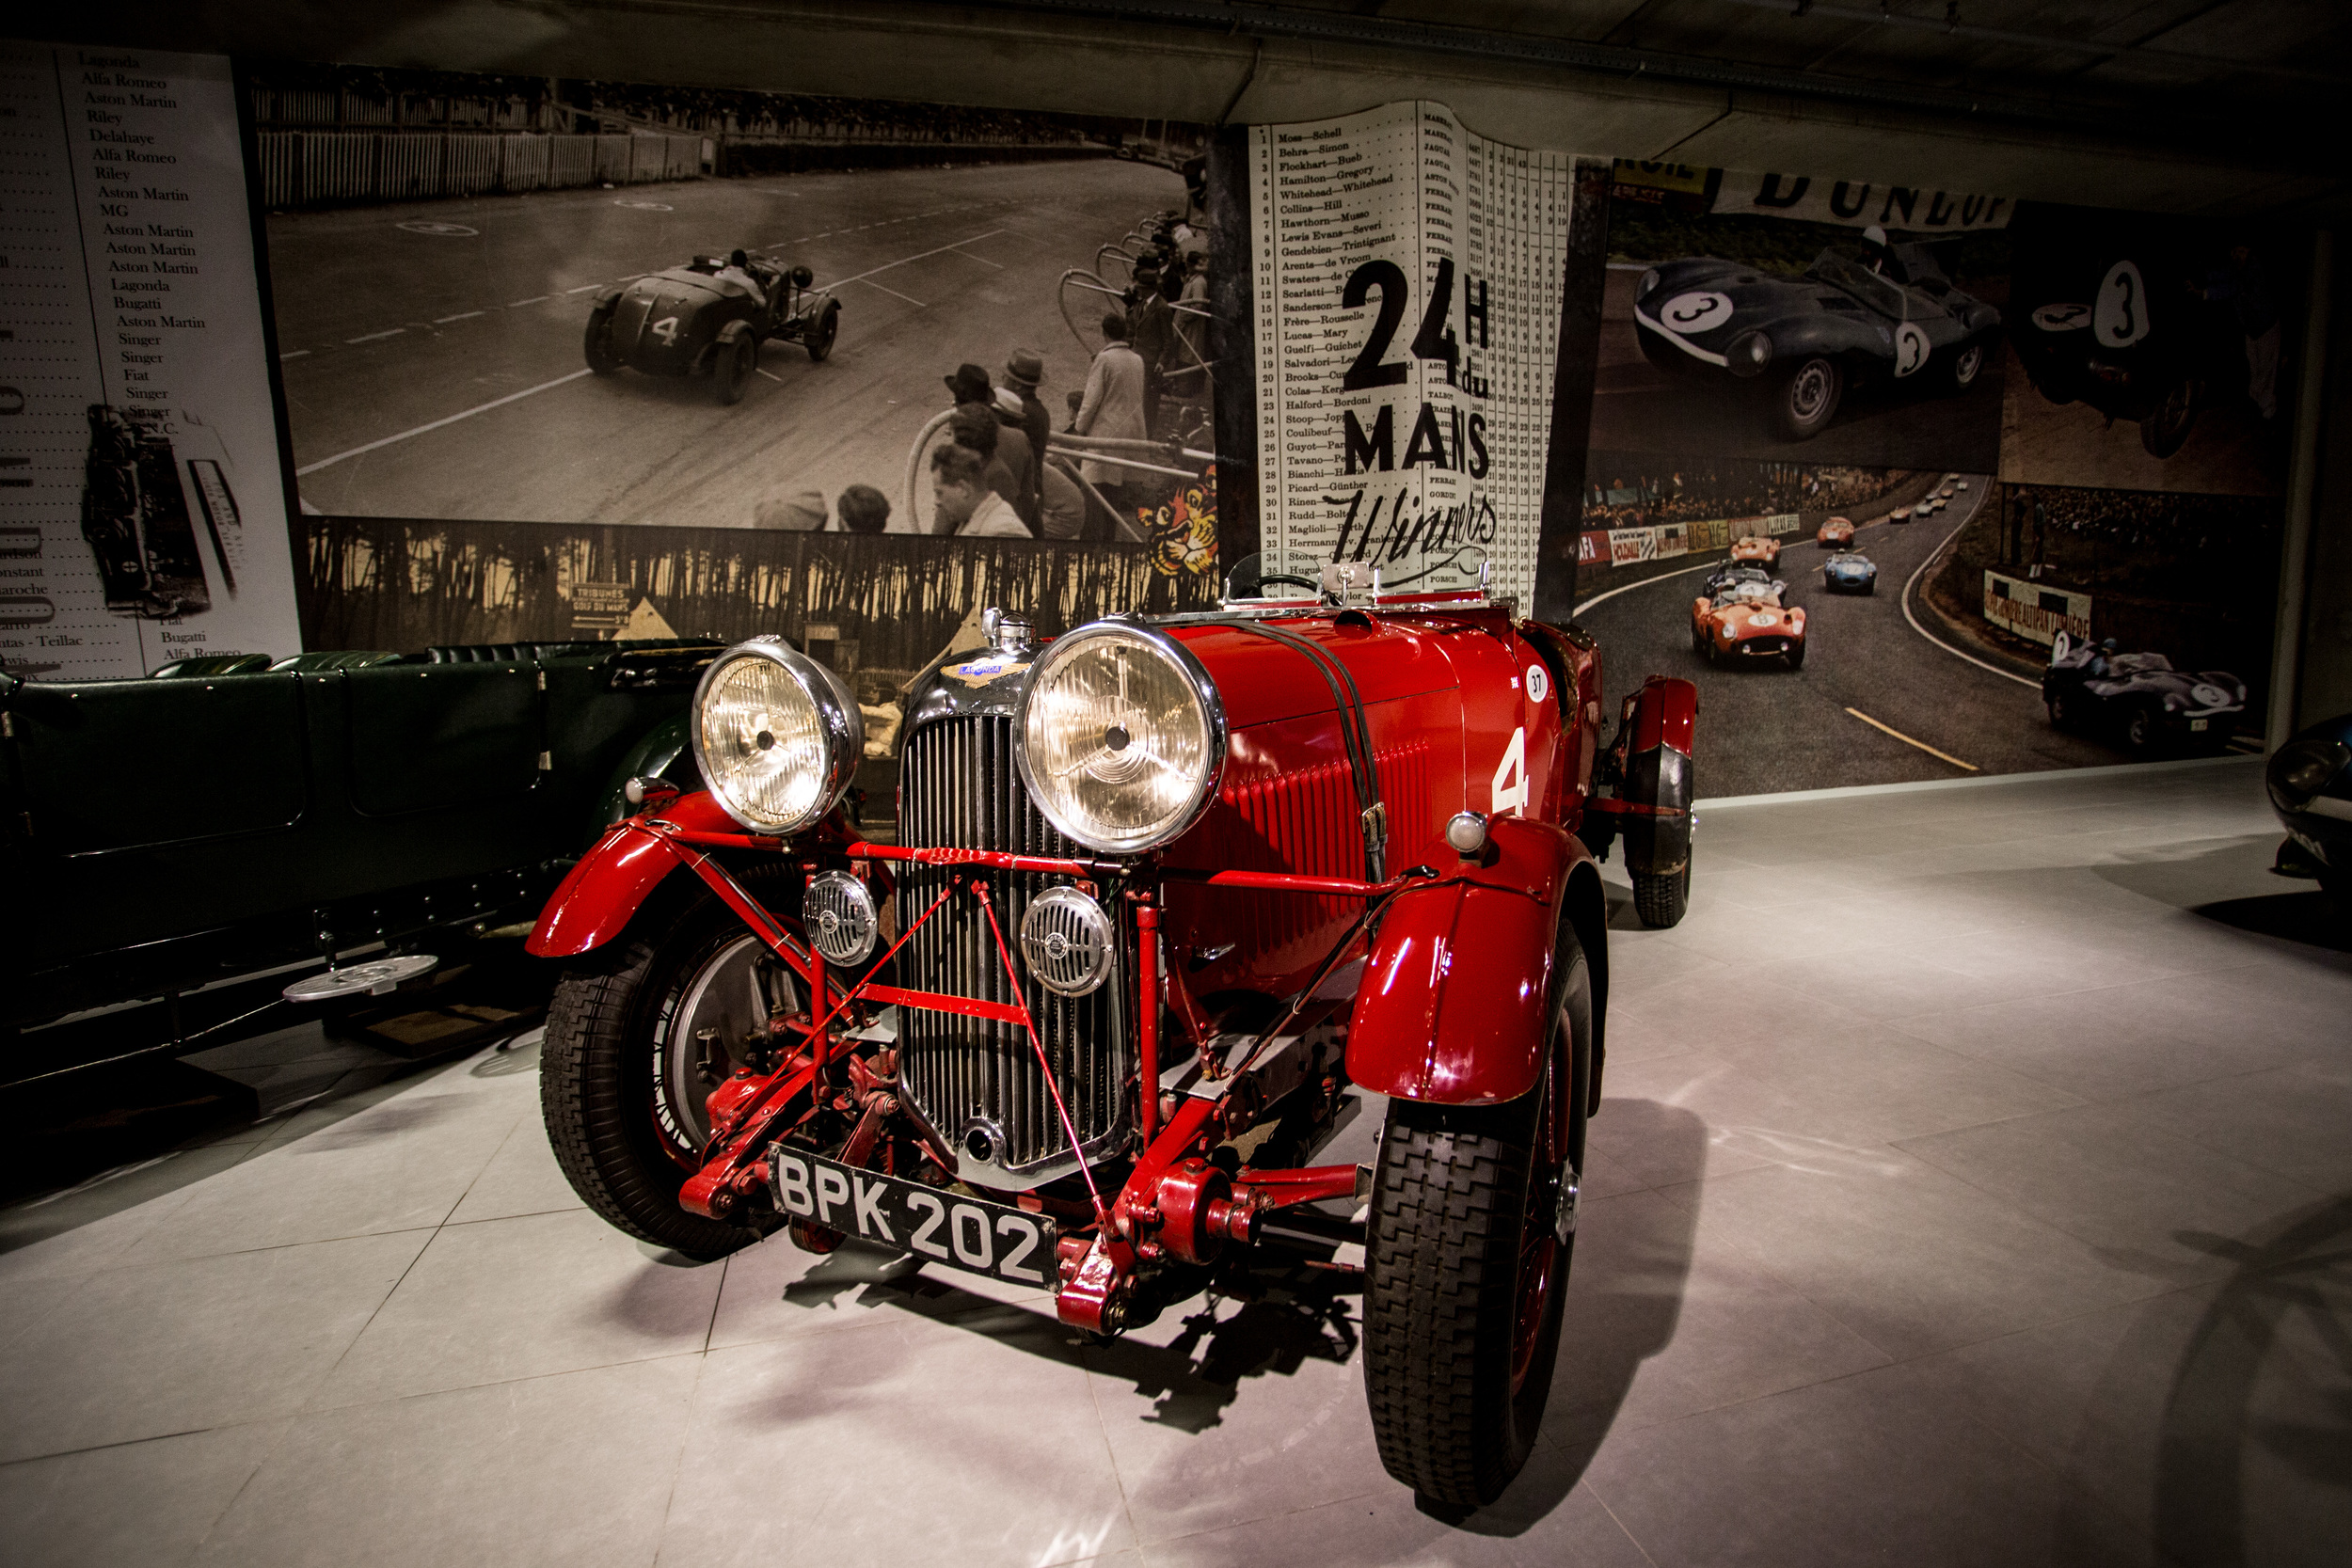 Lagonda M45R: The 1935 Le mans winner